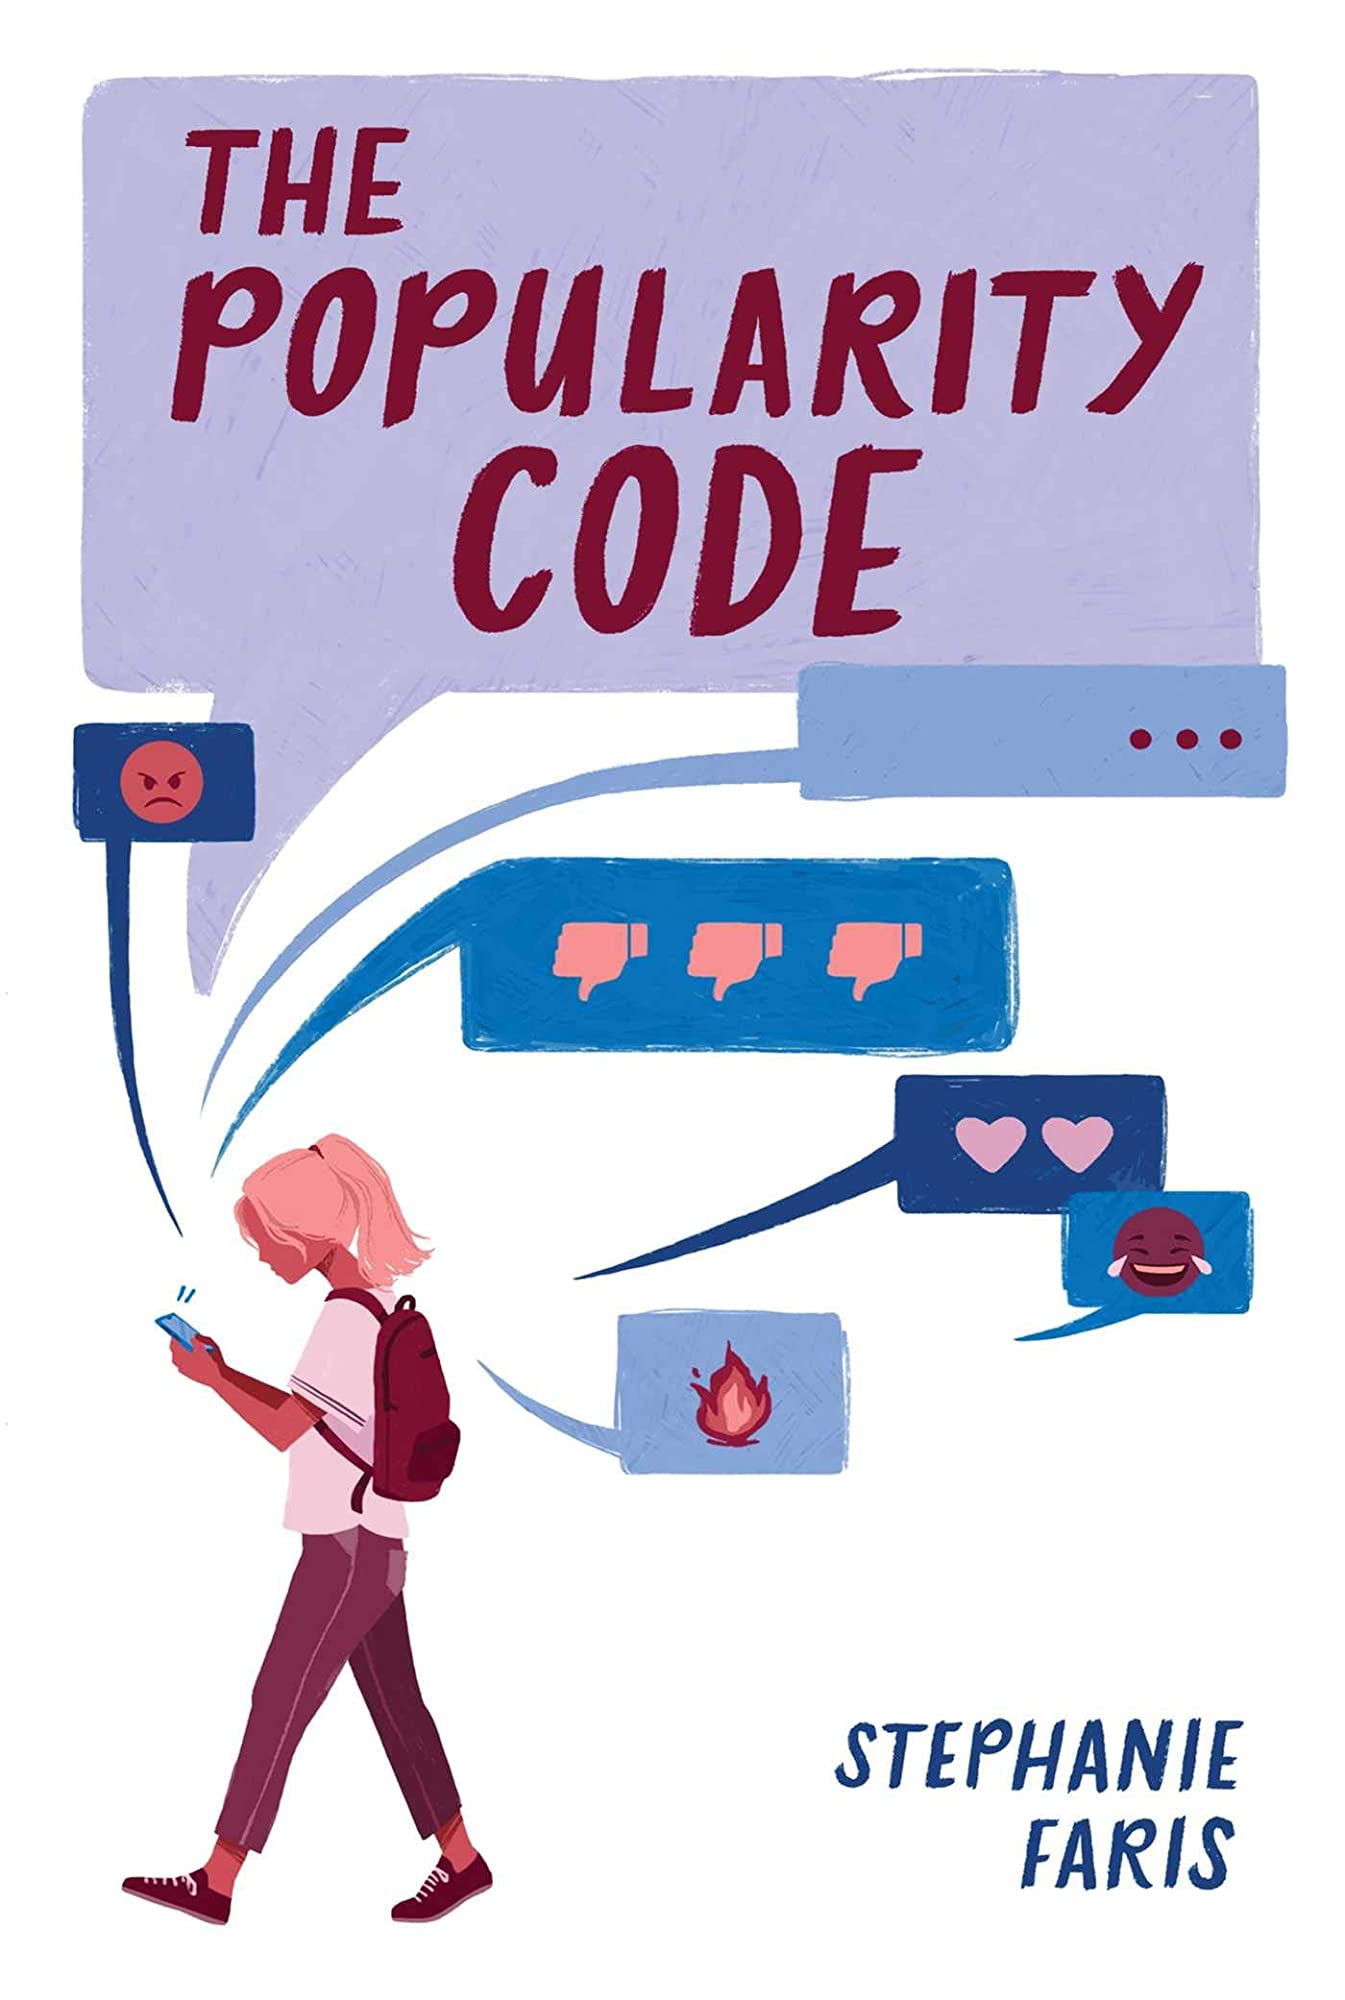 The Popularity Code by Stephanie Faros